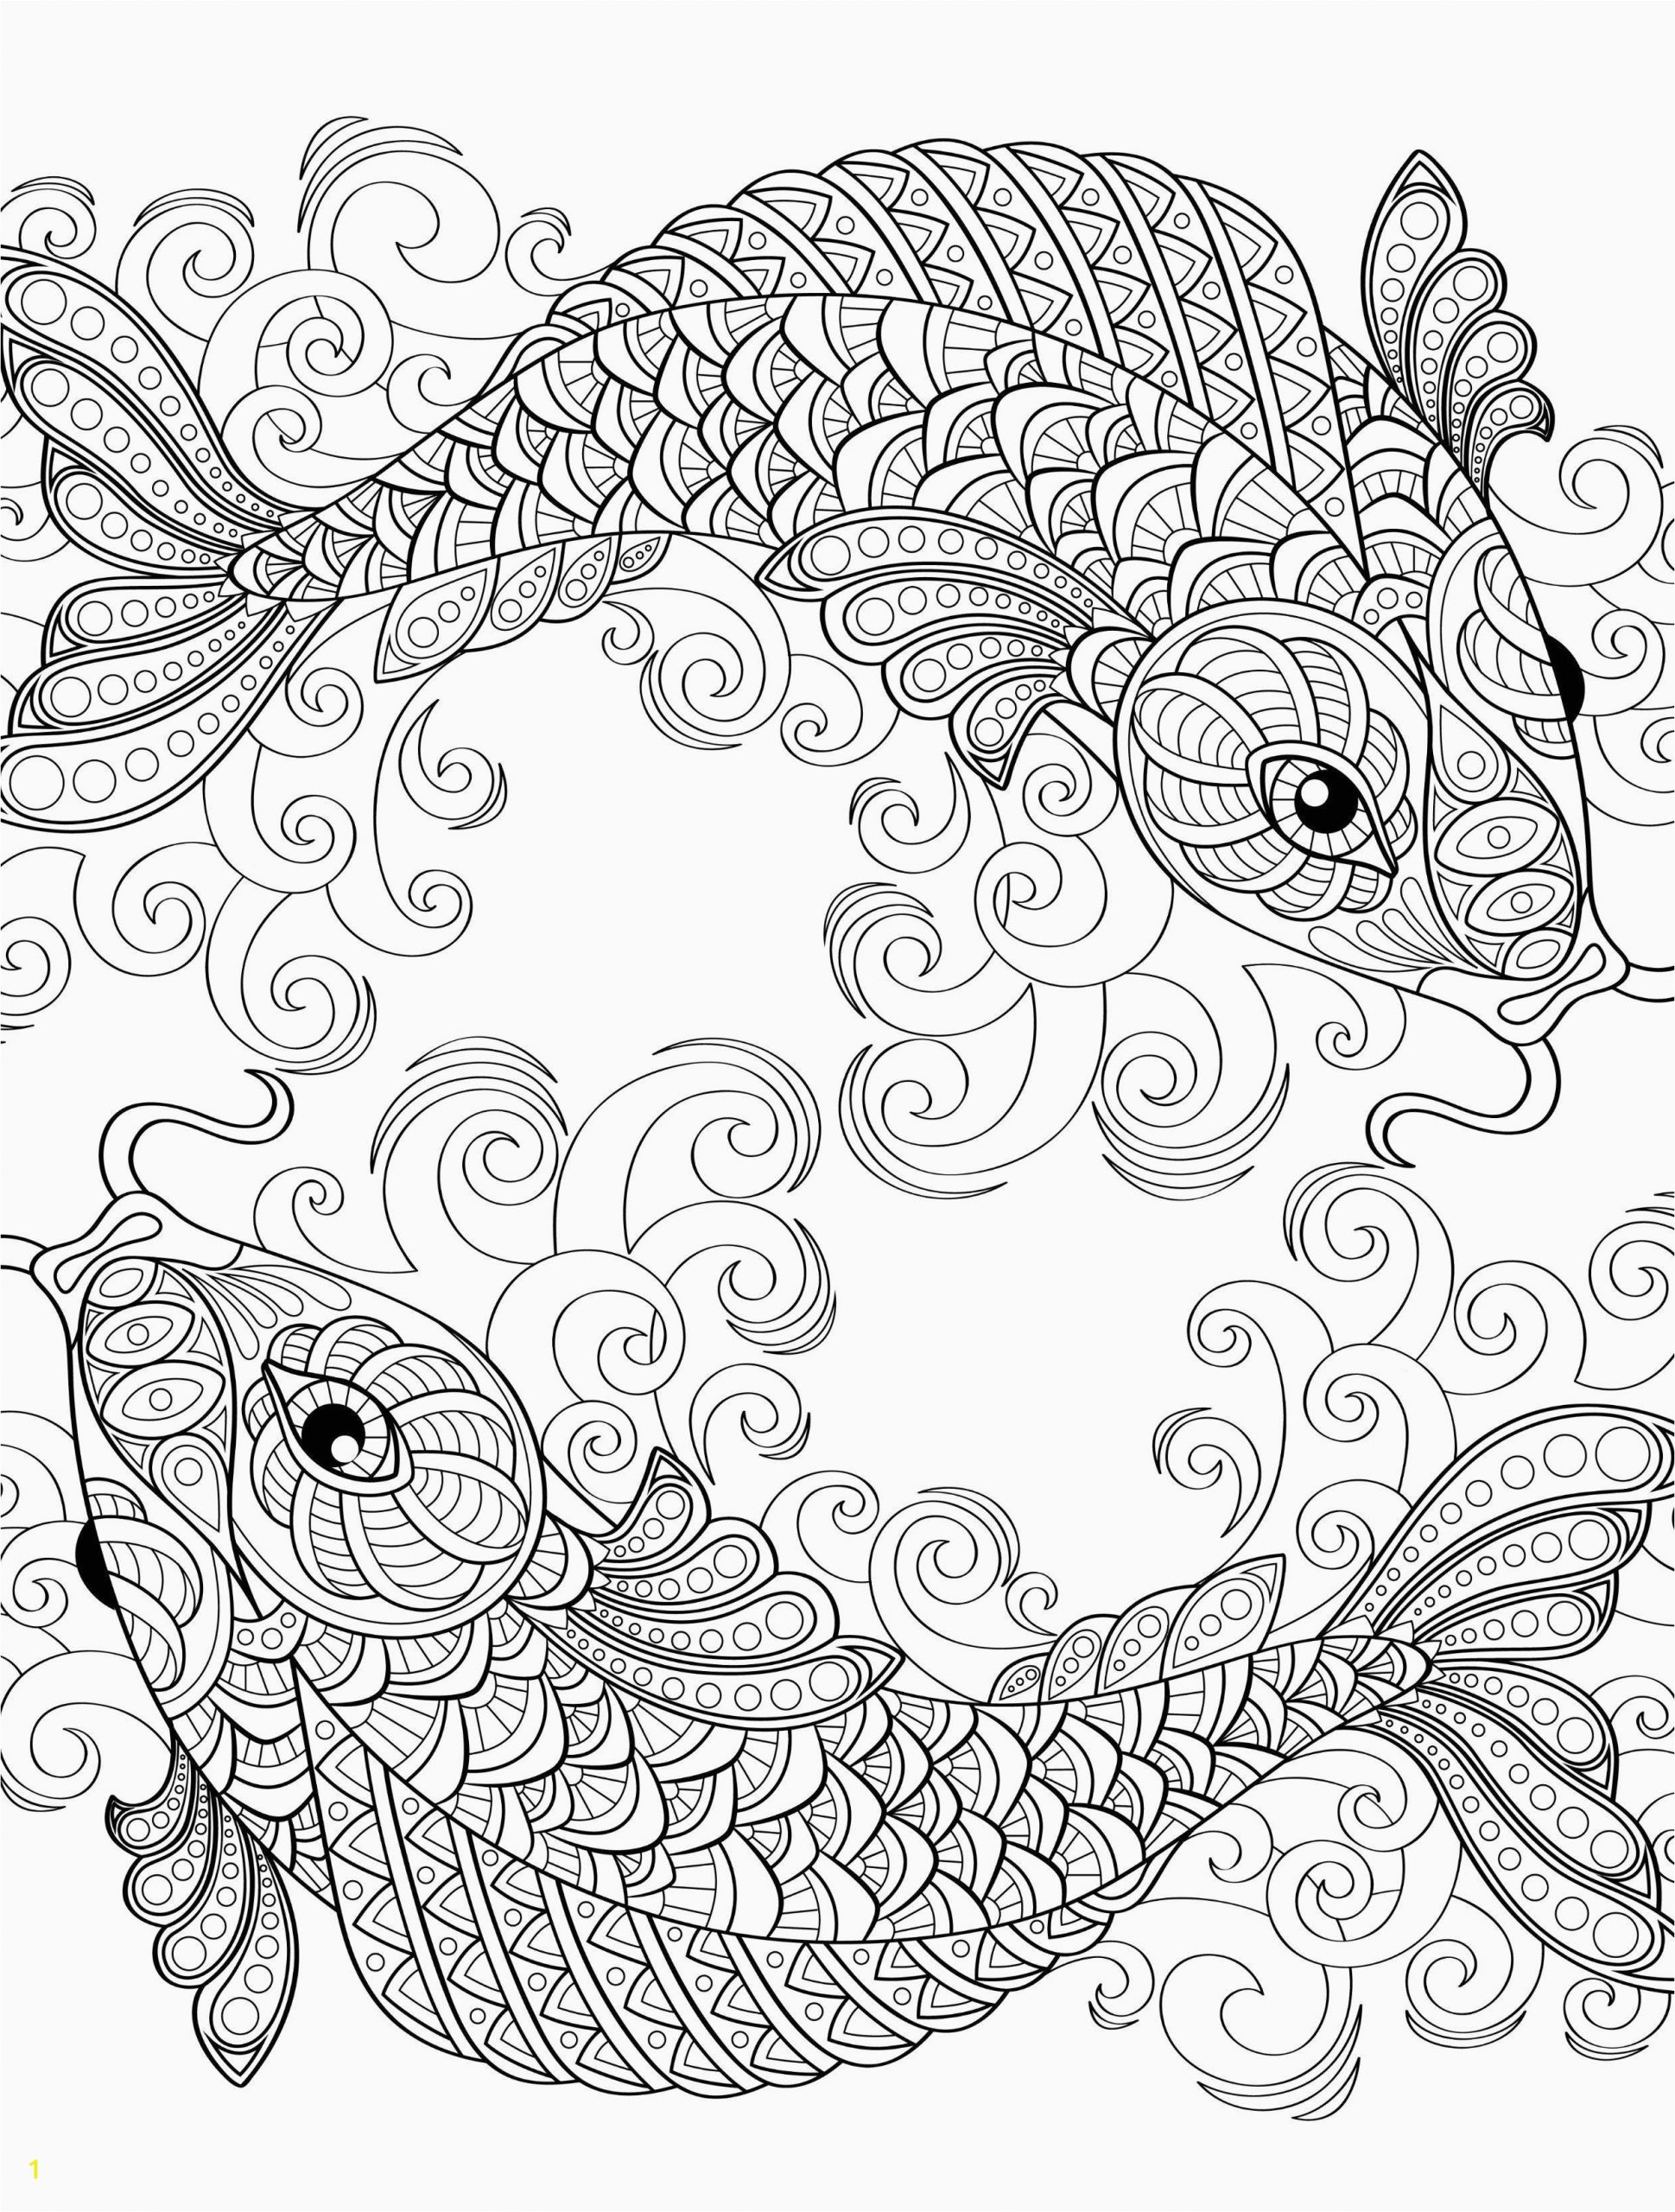 cadence coloring page awesome image coloring book page 54 jvzooreview of cadence coloring page